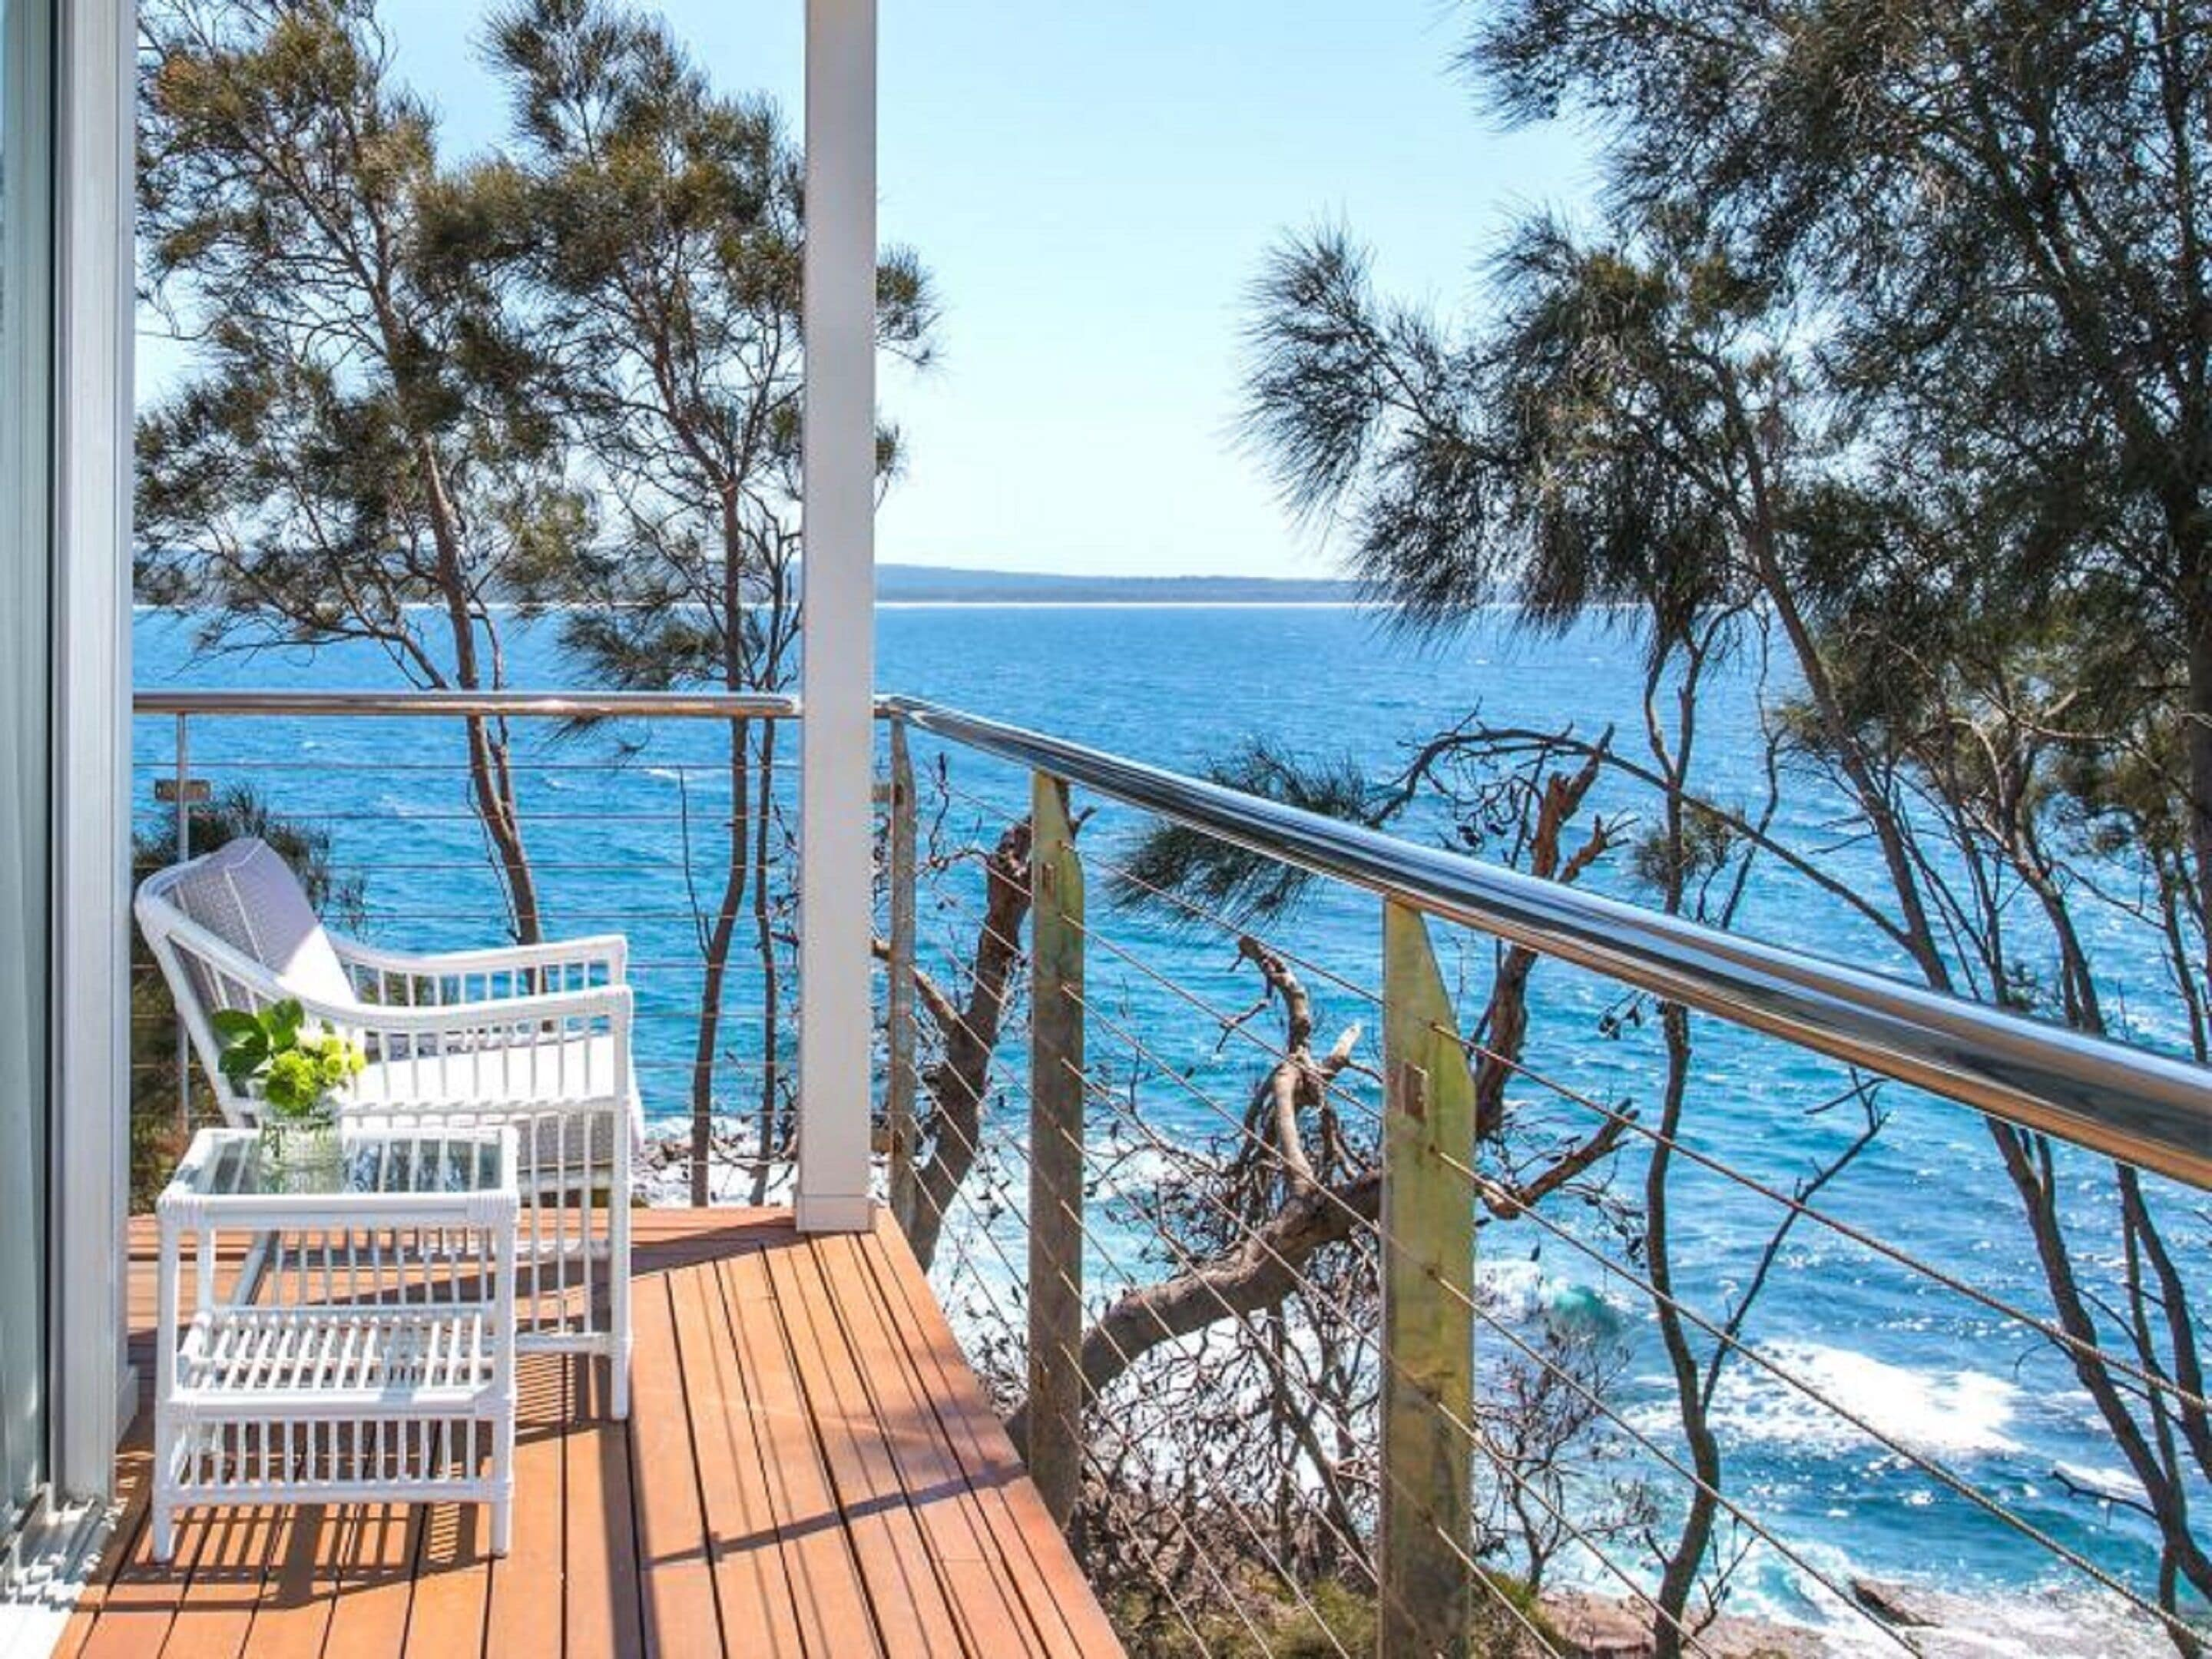 Bannisters by the Sea Mollymook